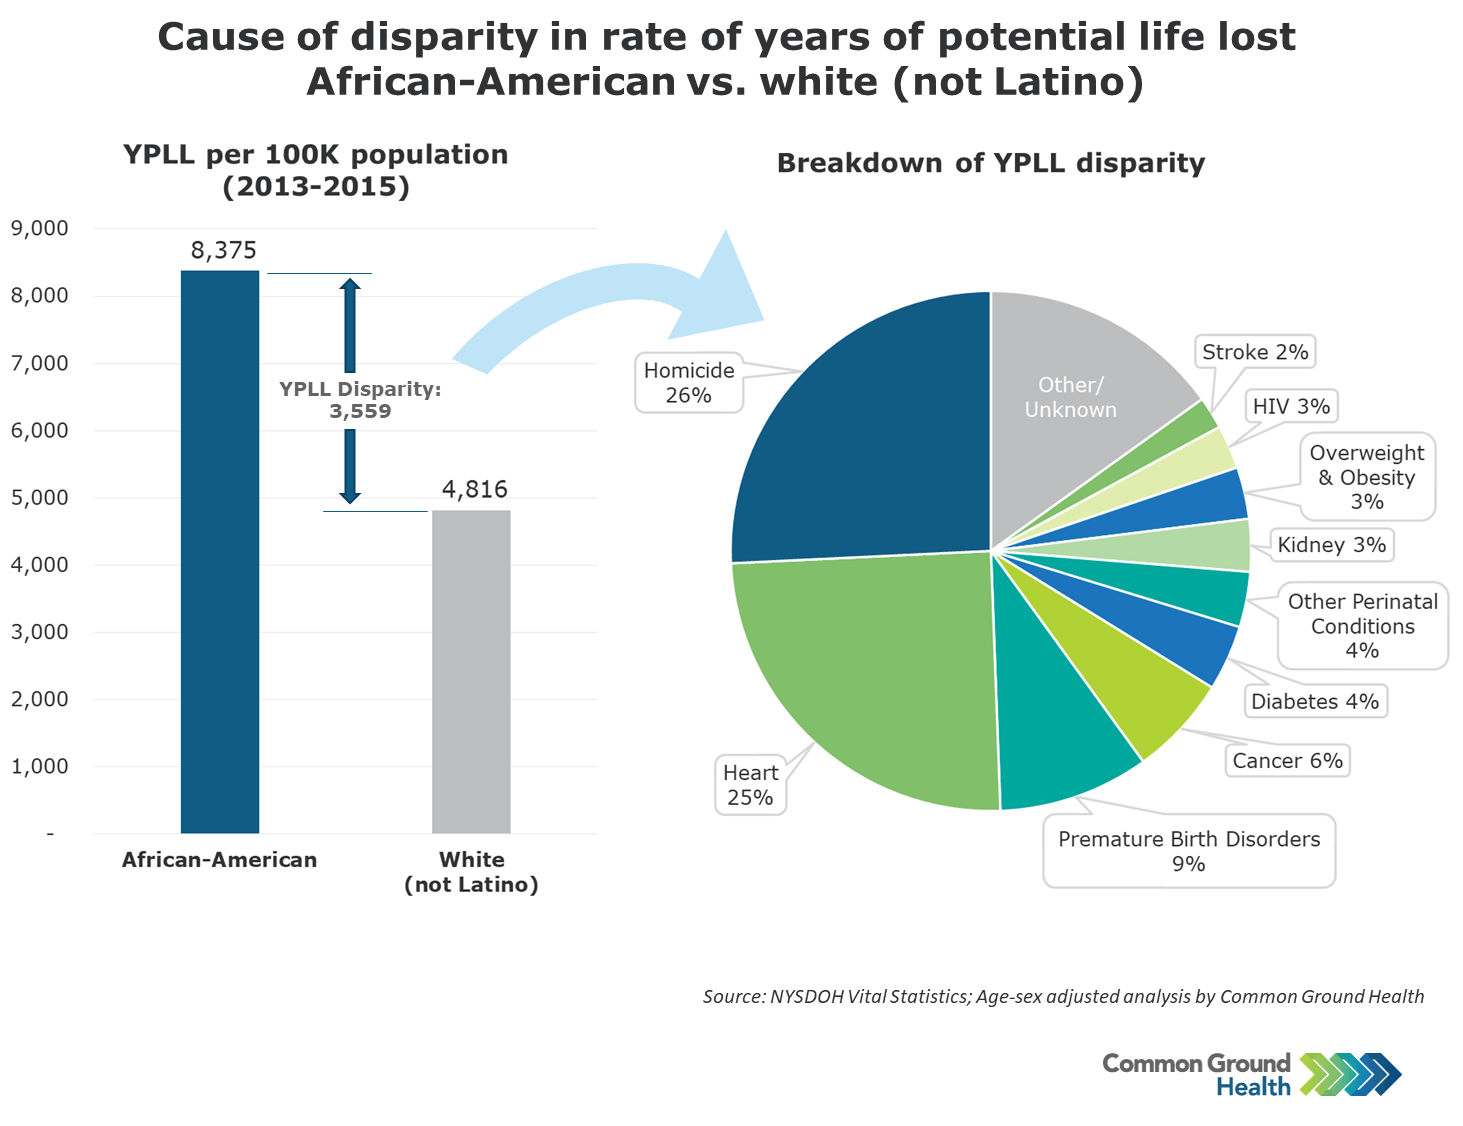 Cause of Disparity in Rate of Years of Potential Life Lost African-American vs White (not Latino)